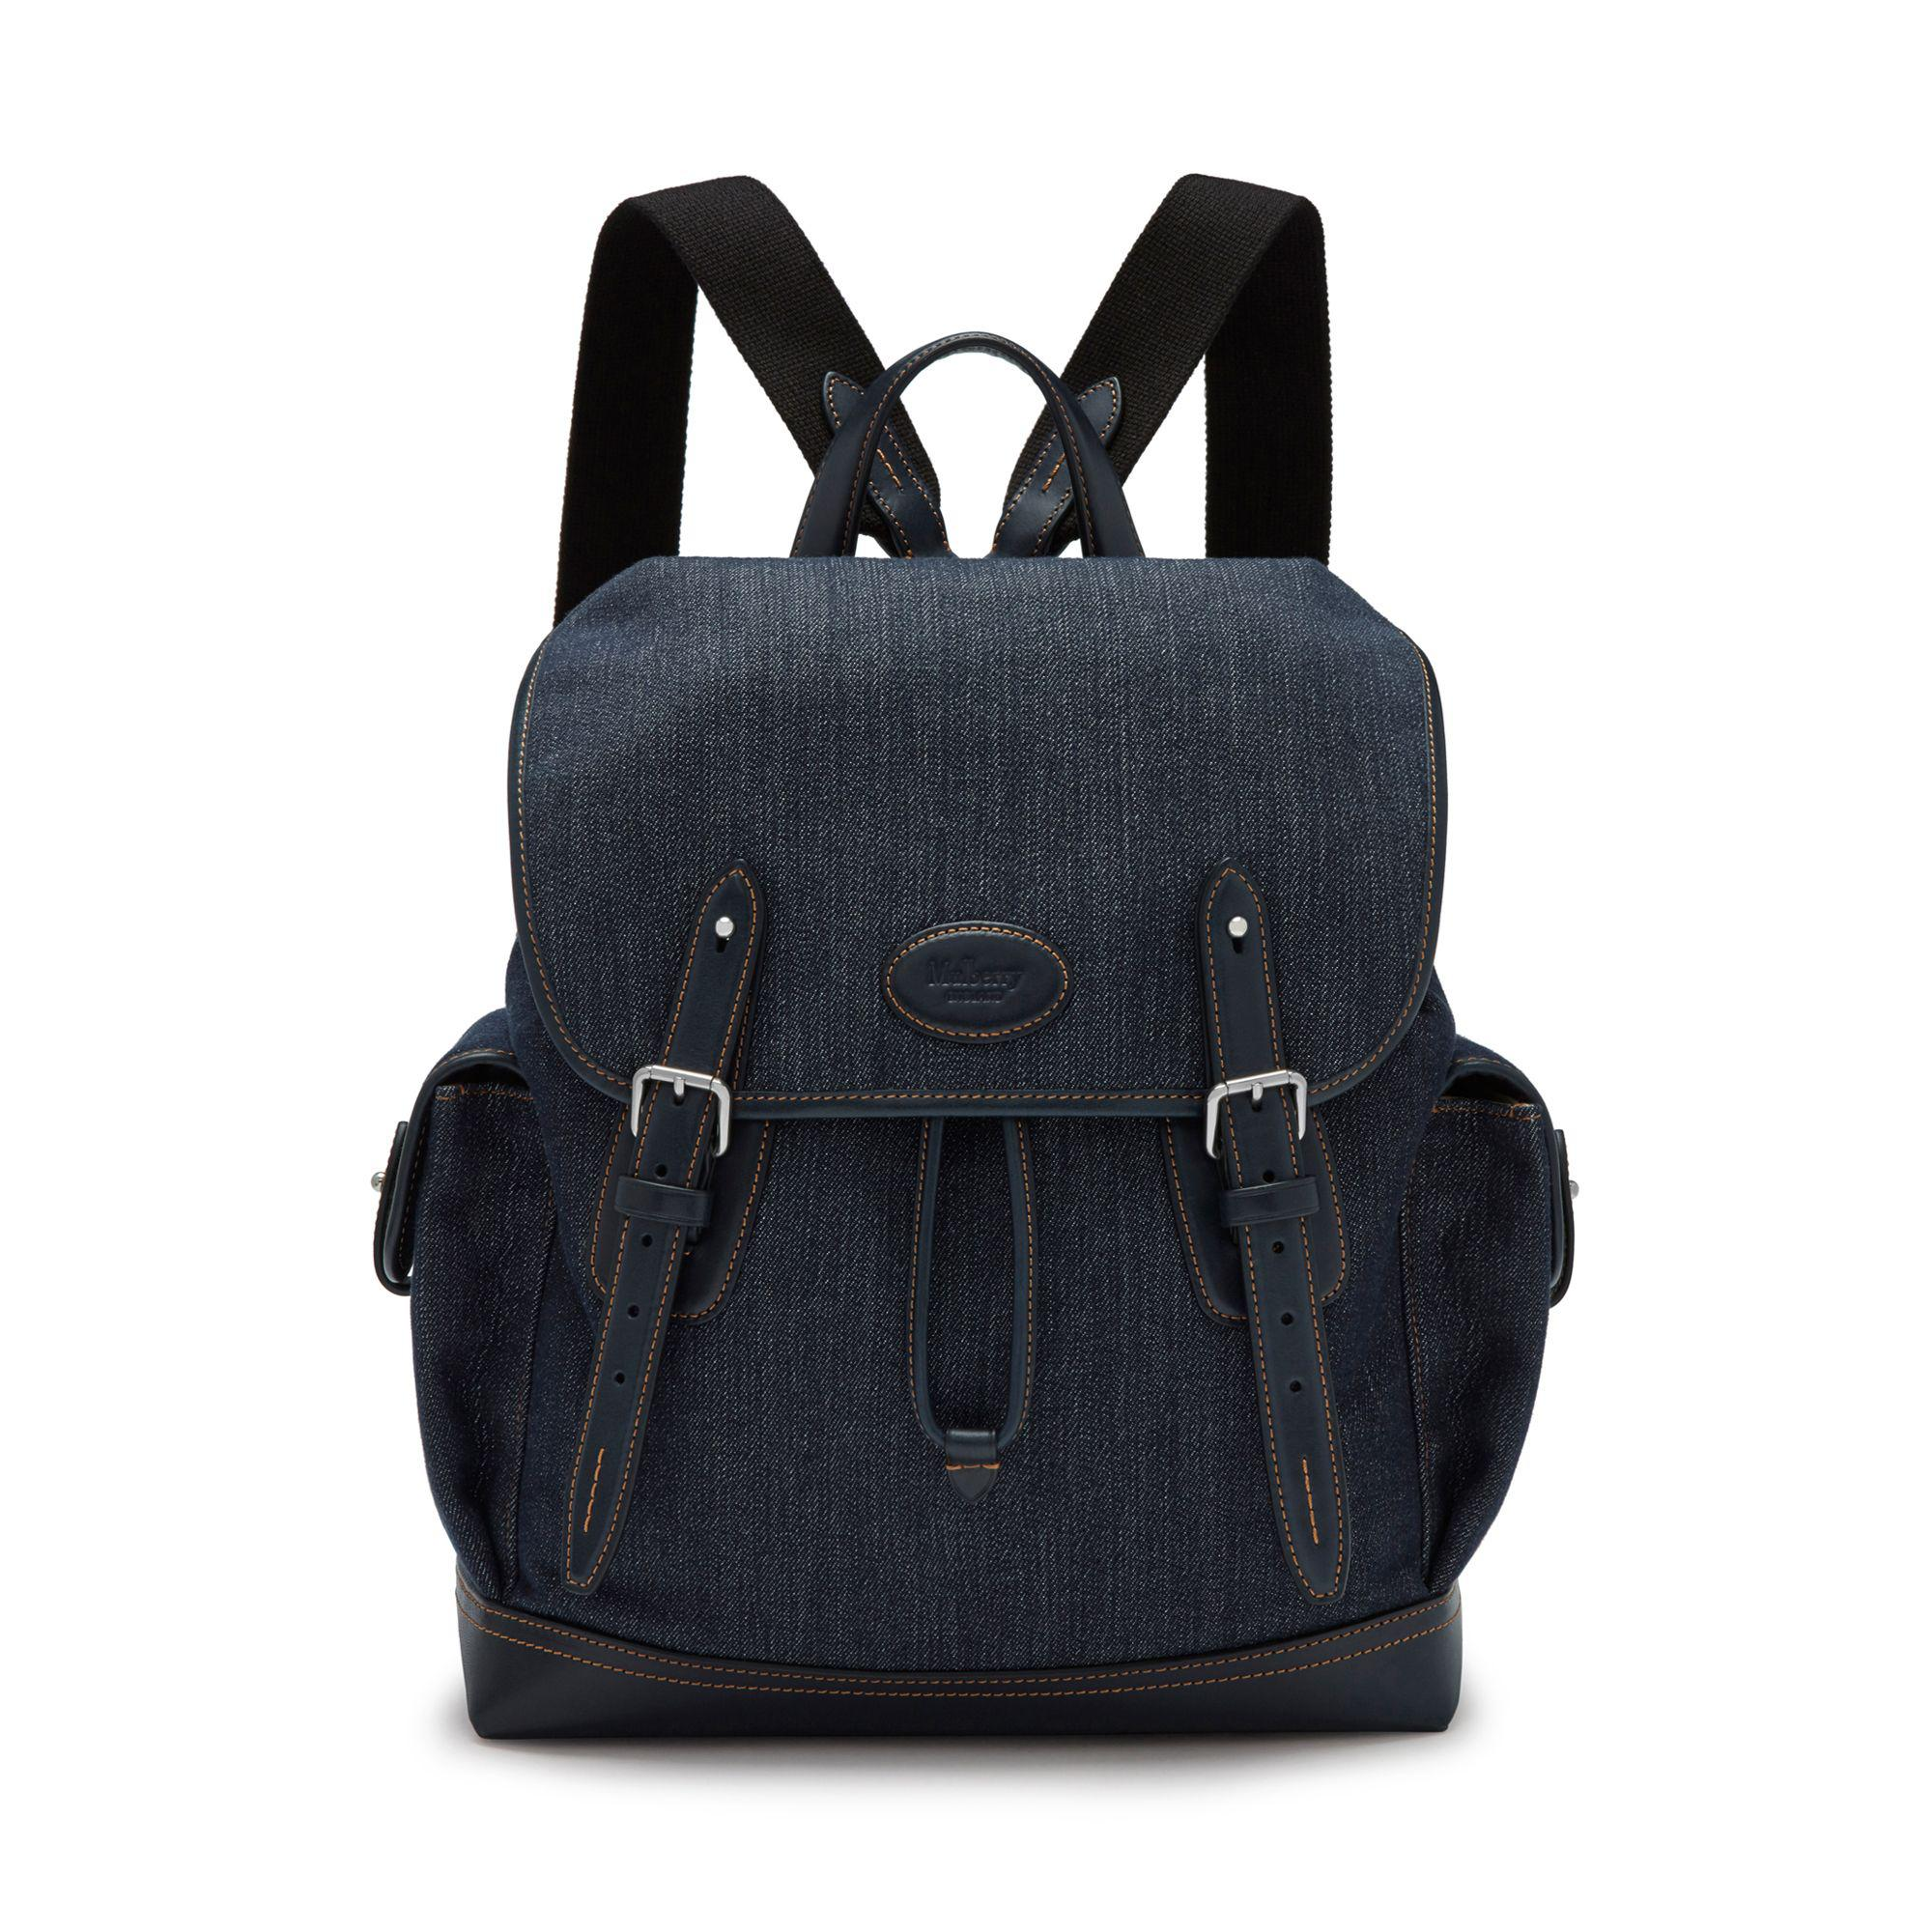 038c5673c5 Lyst - Mulberry Heritage Backpack In Blue Denim And Smooth Calf in ...